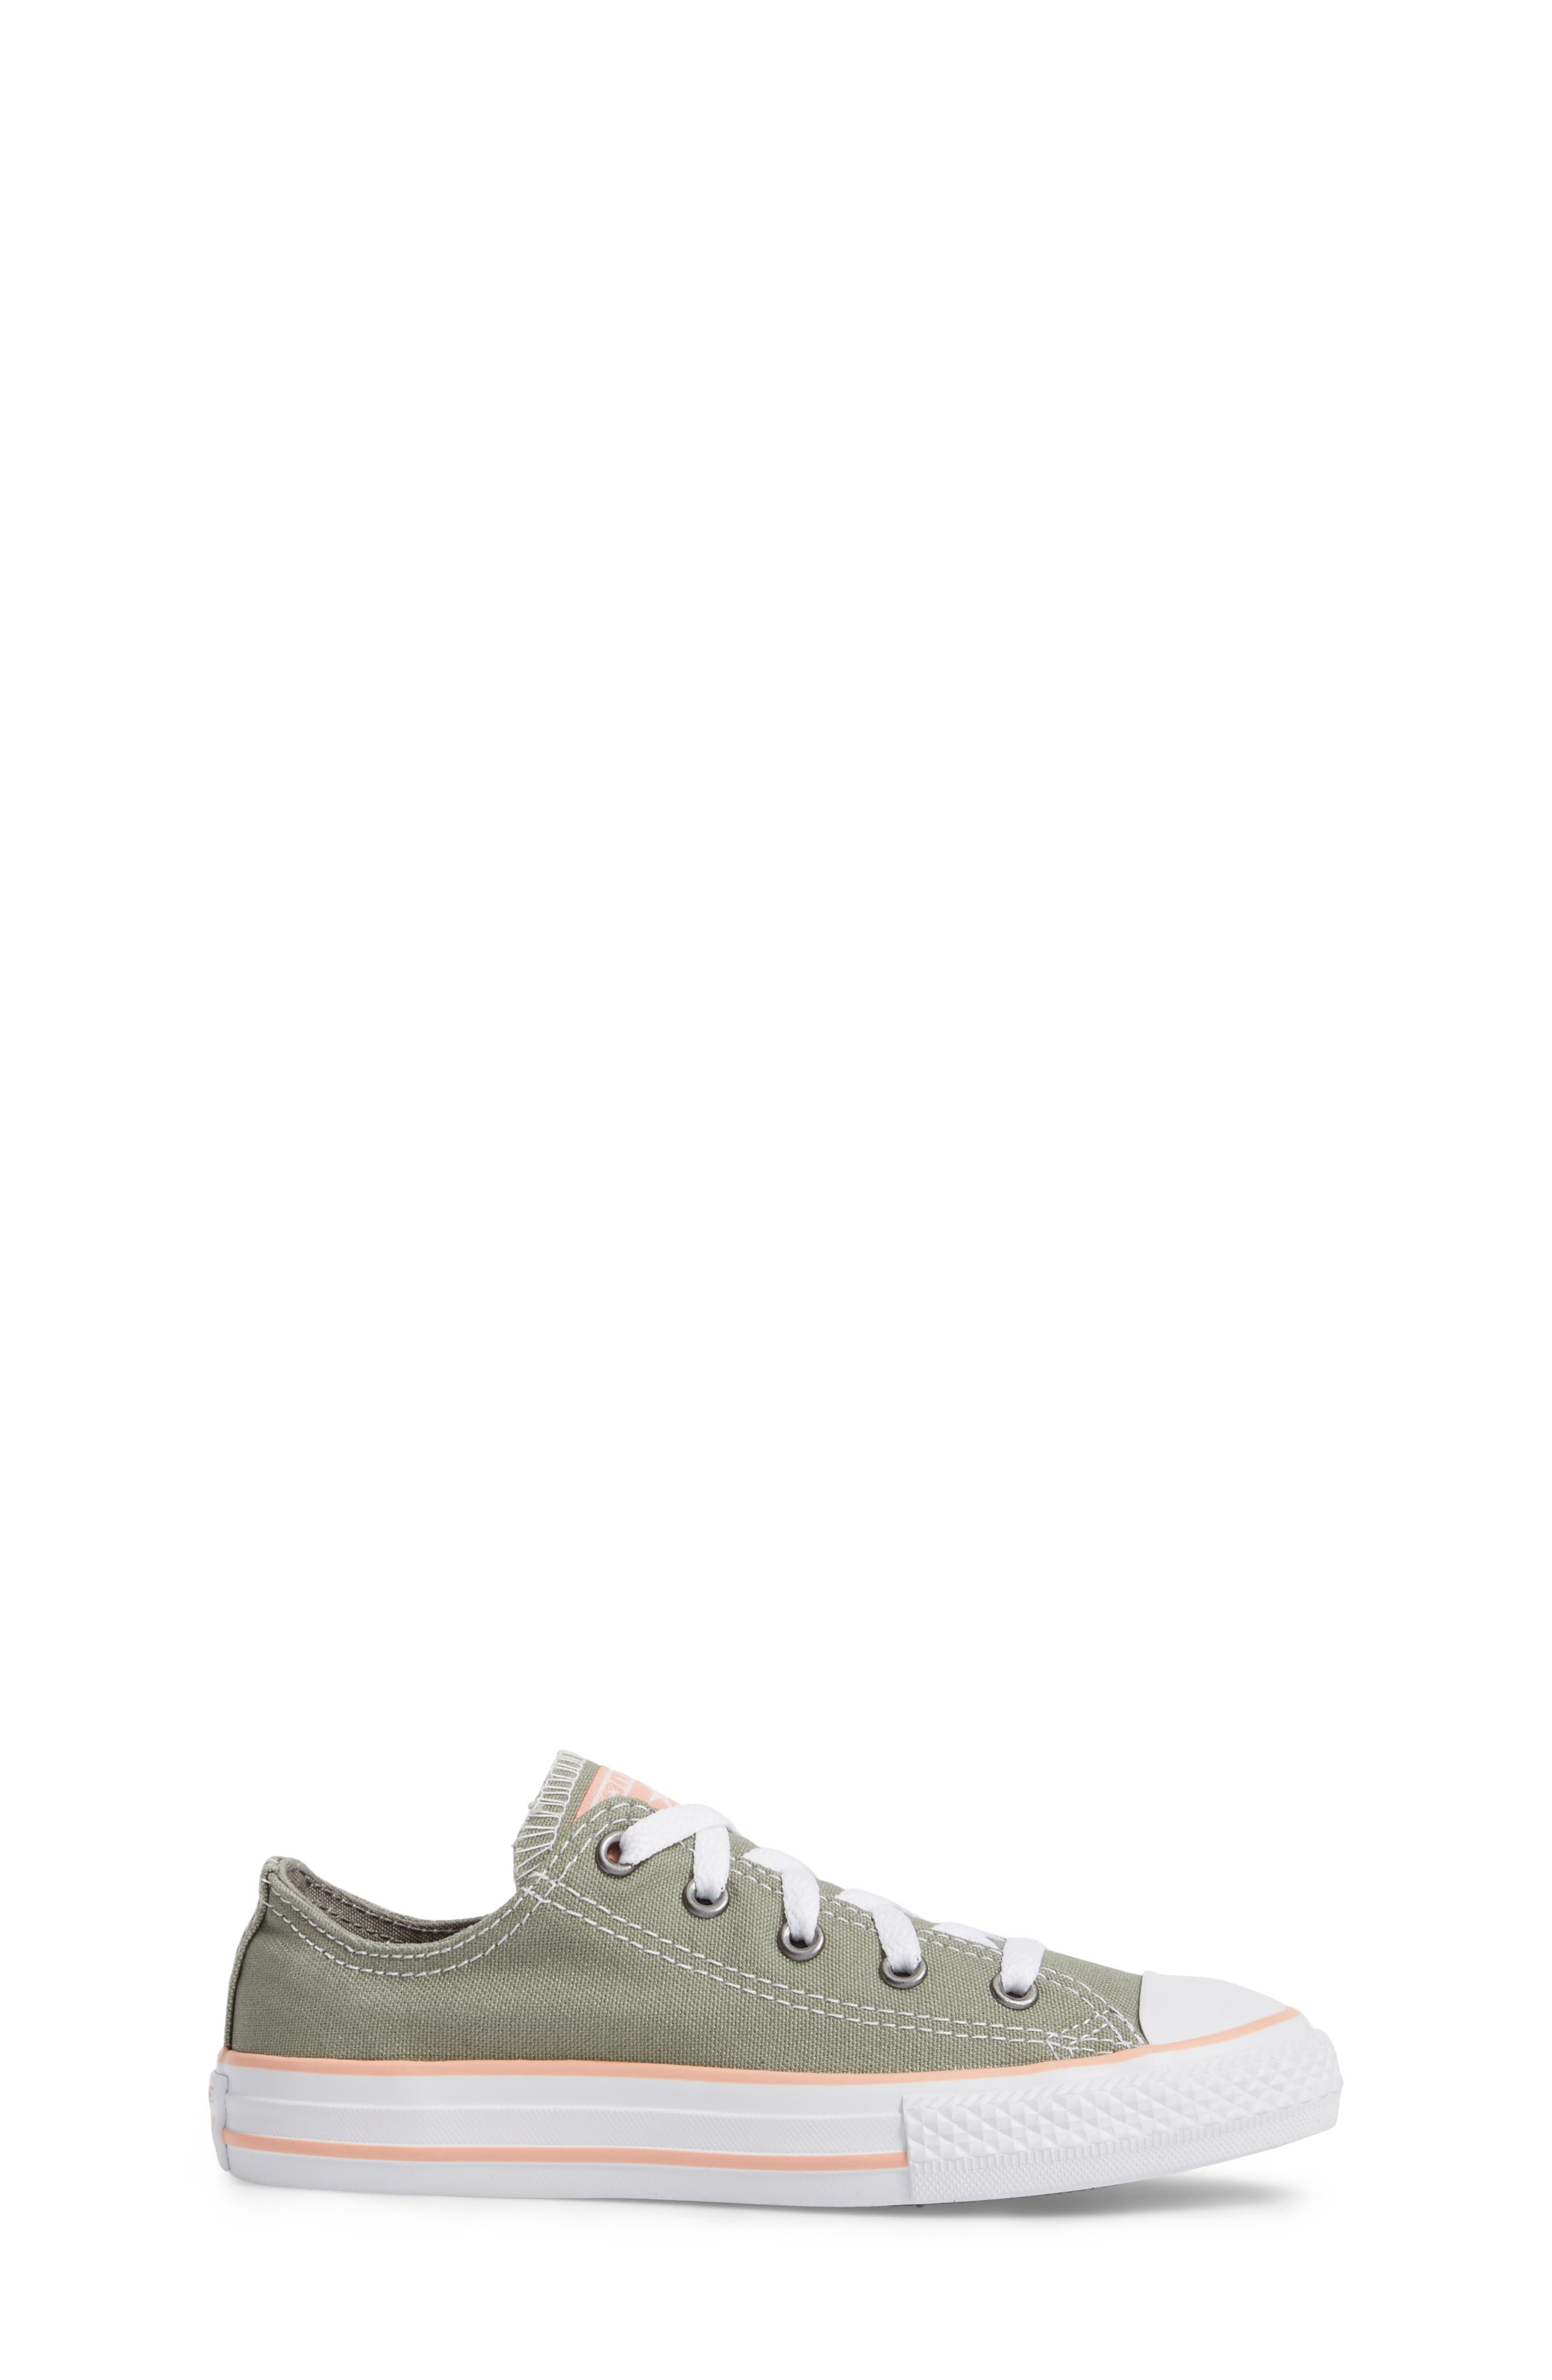 Chuck Taylor<sup>®</sup> All Star<sup>®</sup> Low Top Sneaker,                             Alternate thumbnail 5, color,